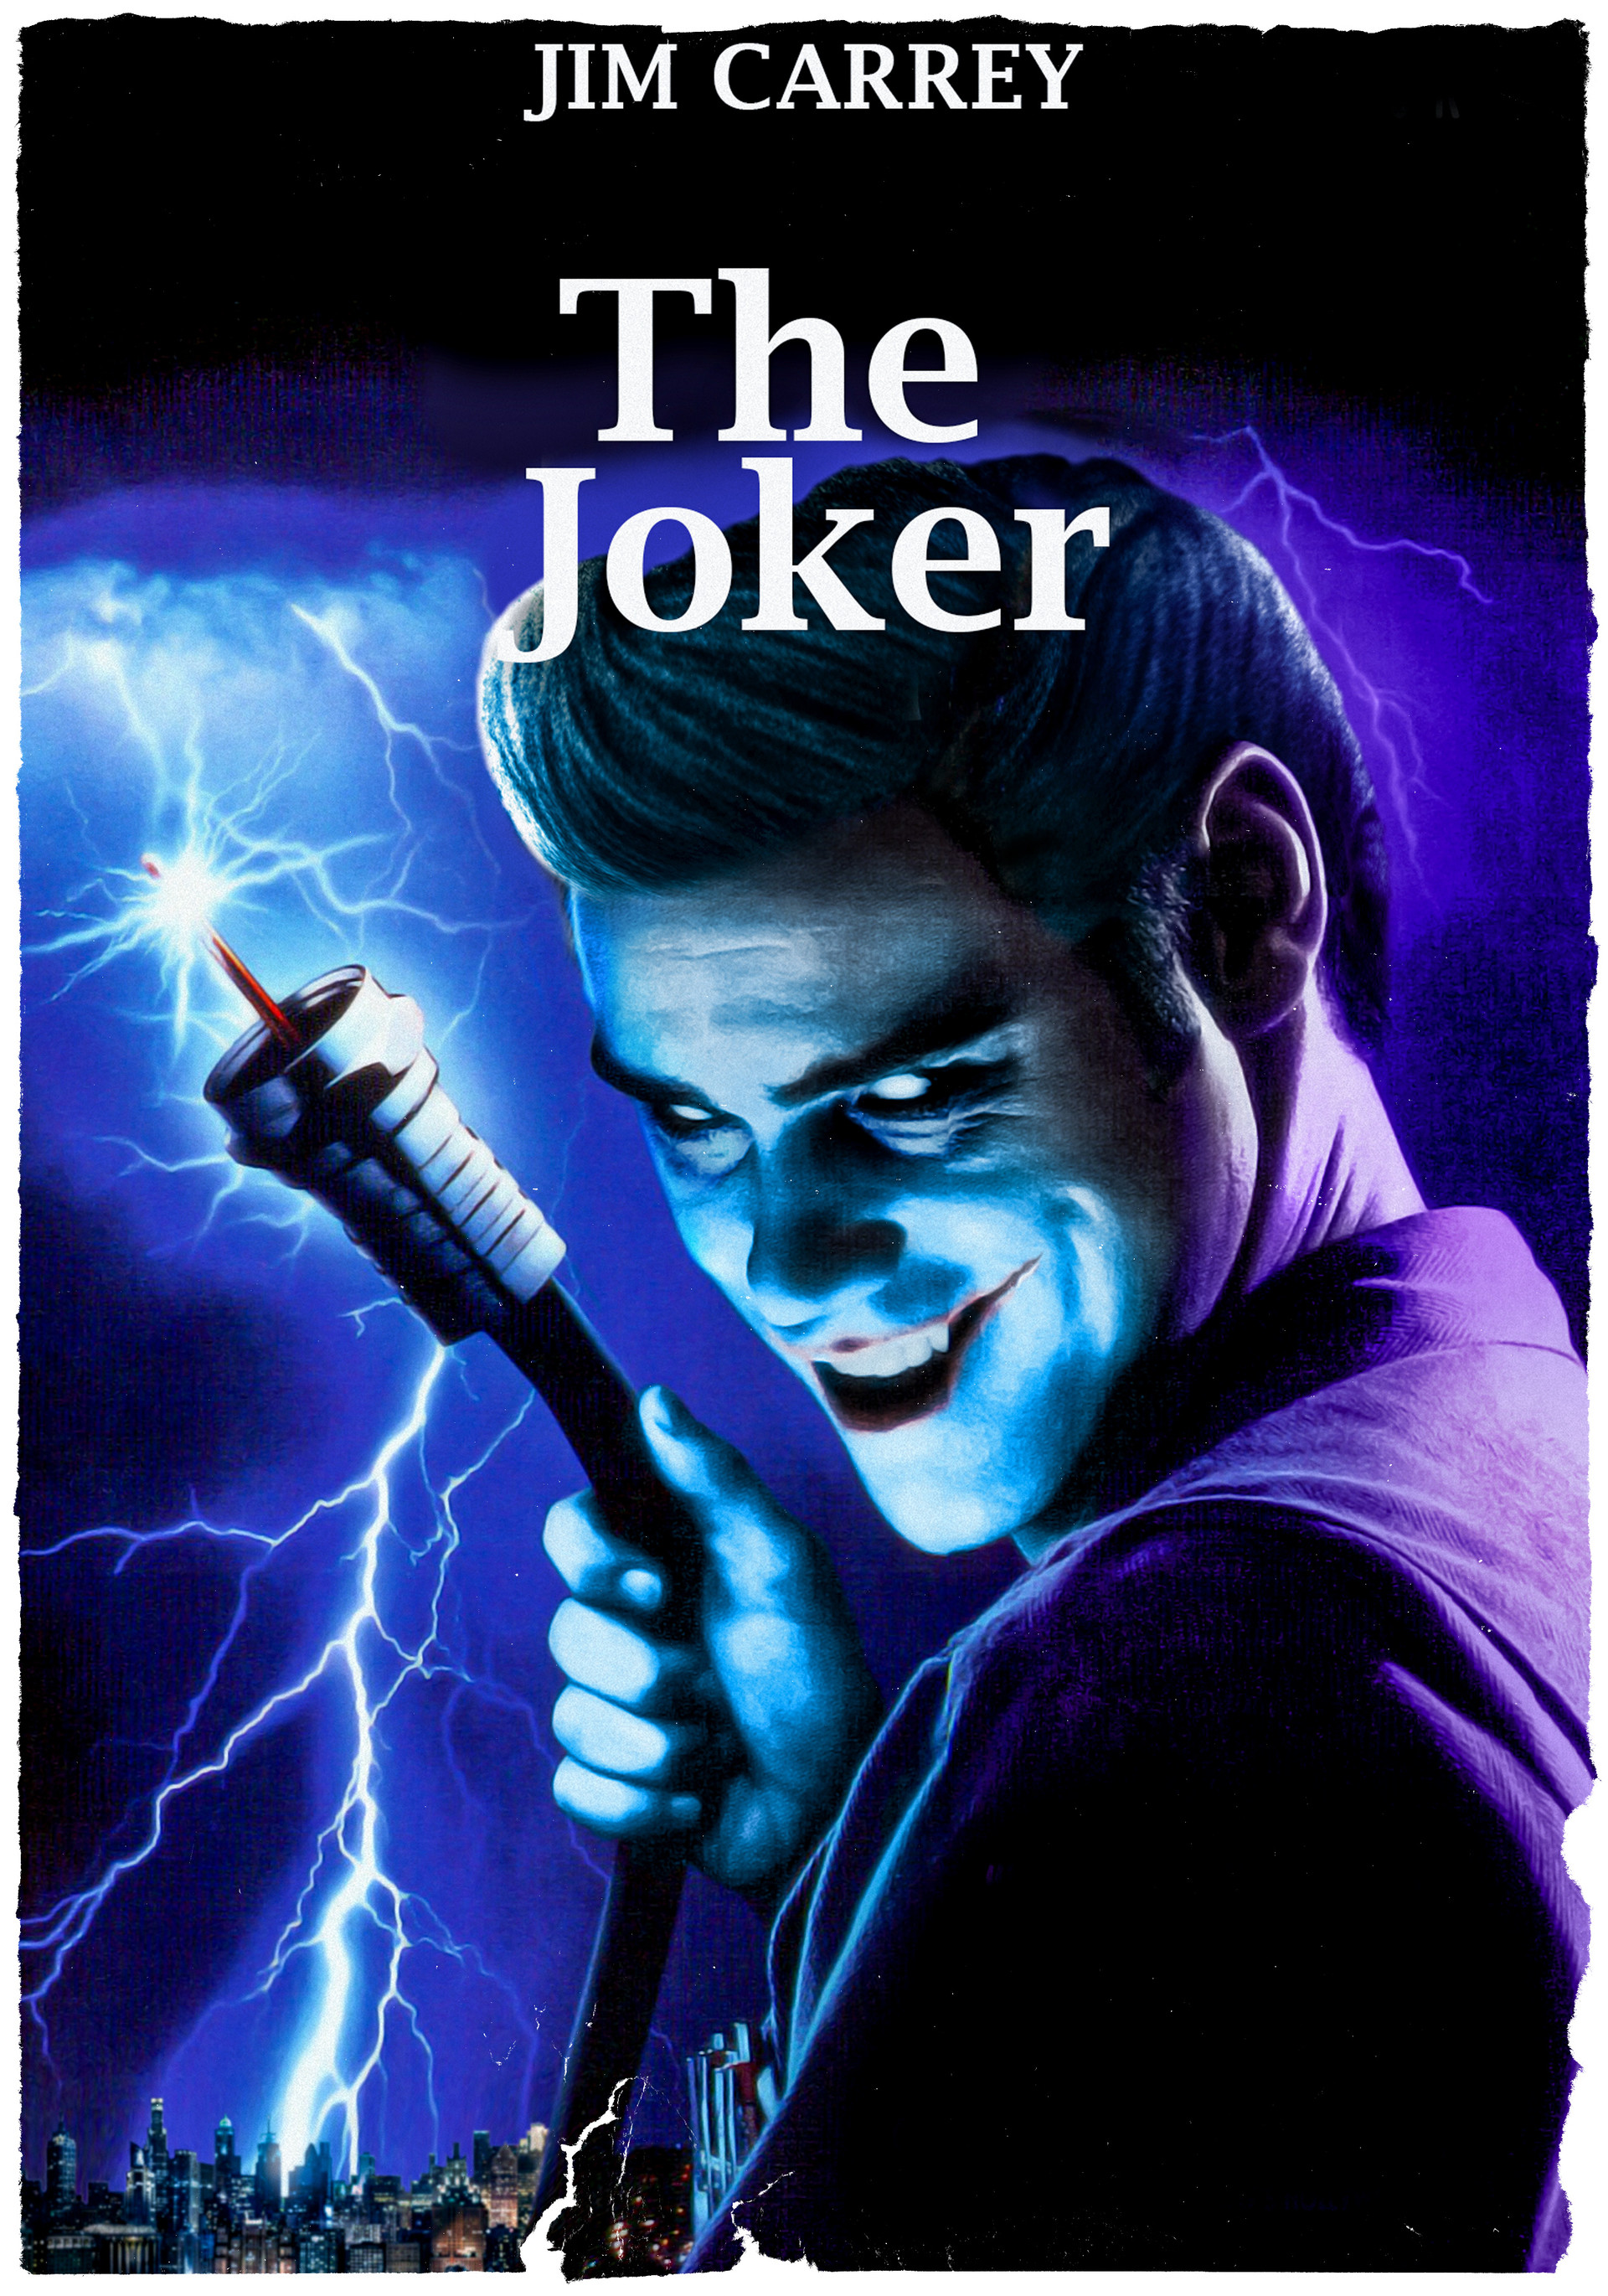 medium resolution of the cable guy jim carrey as the joker